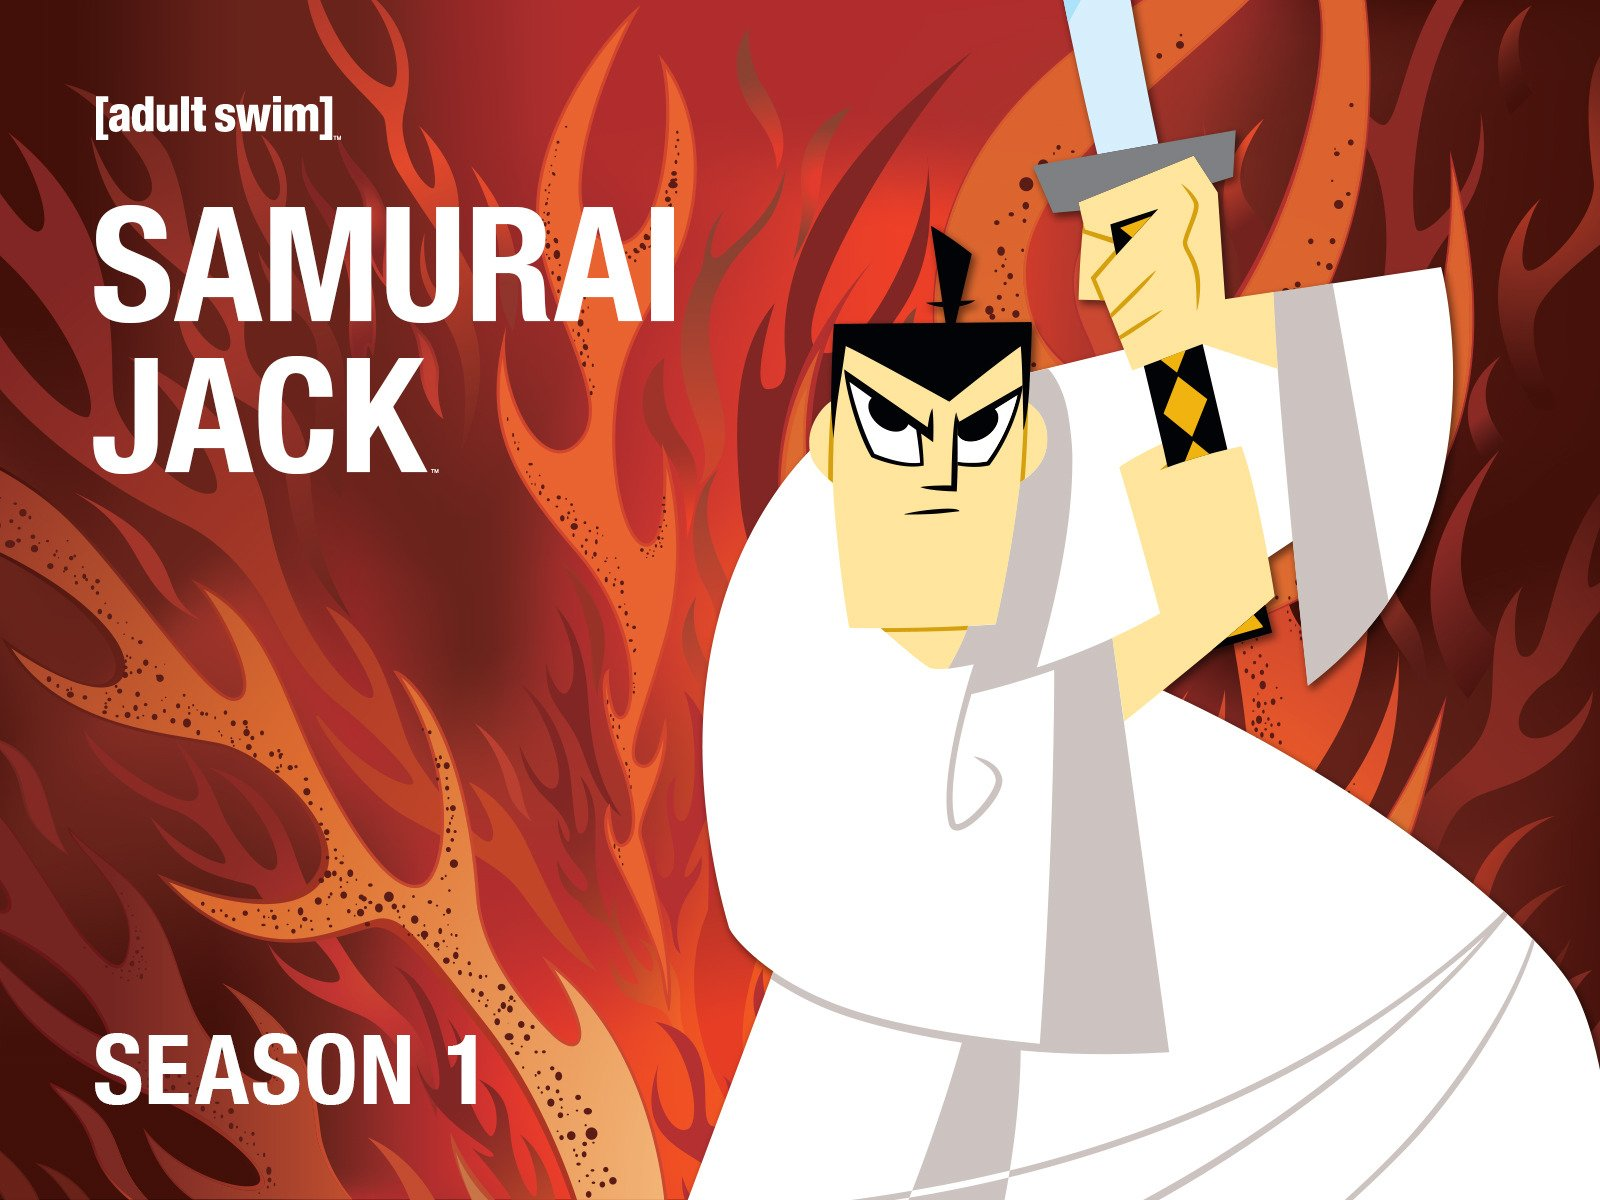 Samurai Jack Images Season 1 Hd Wallpaper And Background